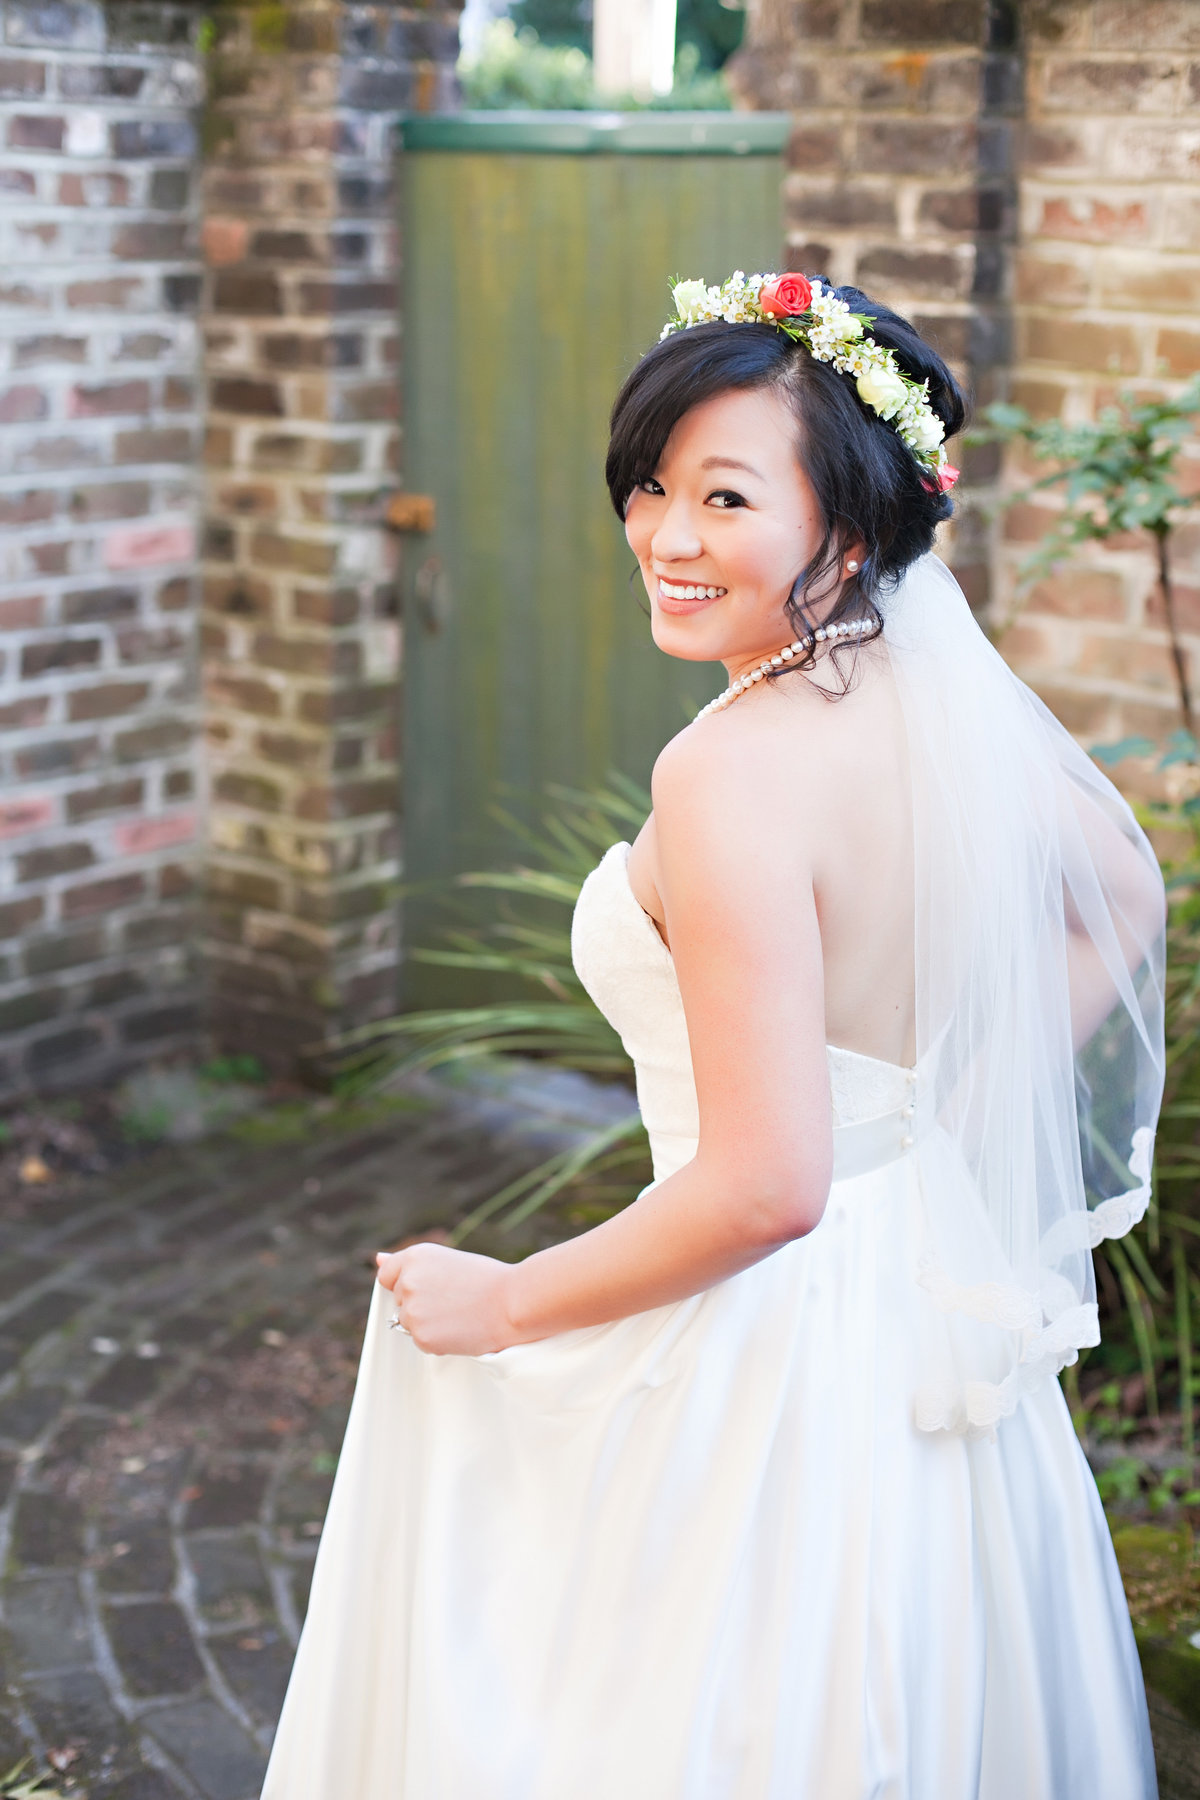 Savannah Bride Portrait Flower Crown Veil Wedding Dress Garden Courtyard